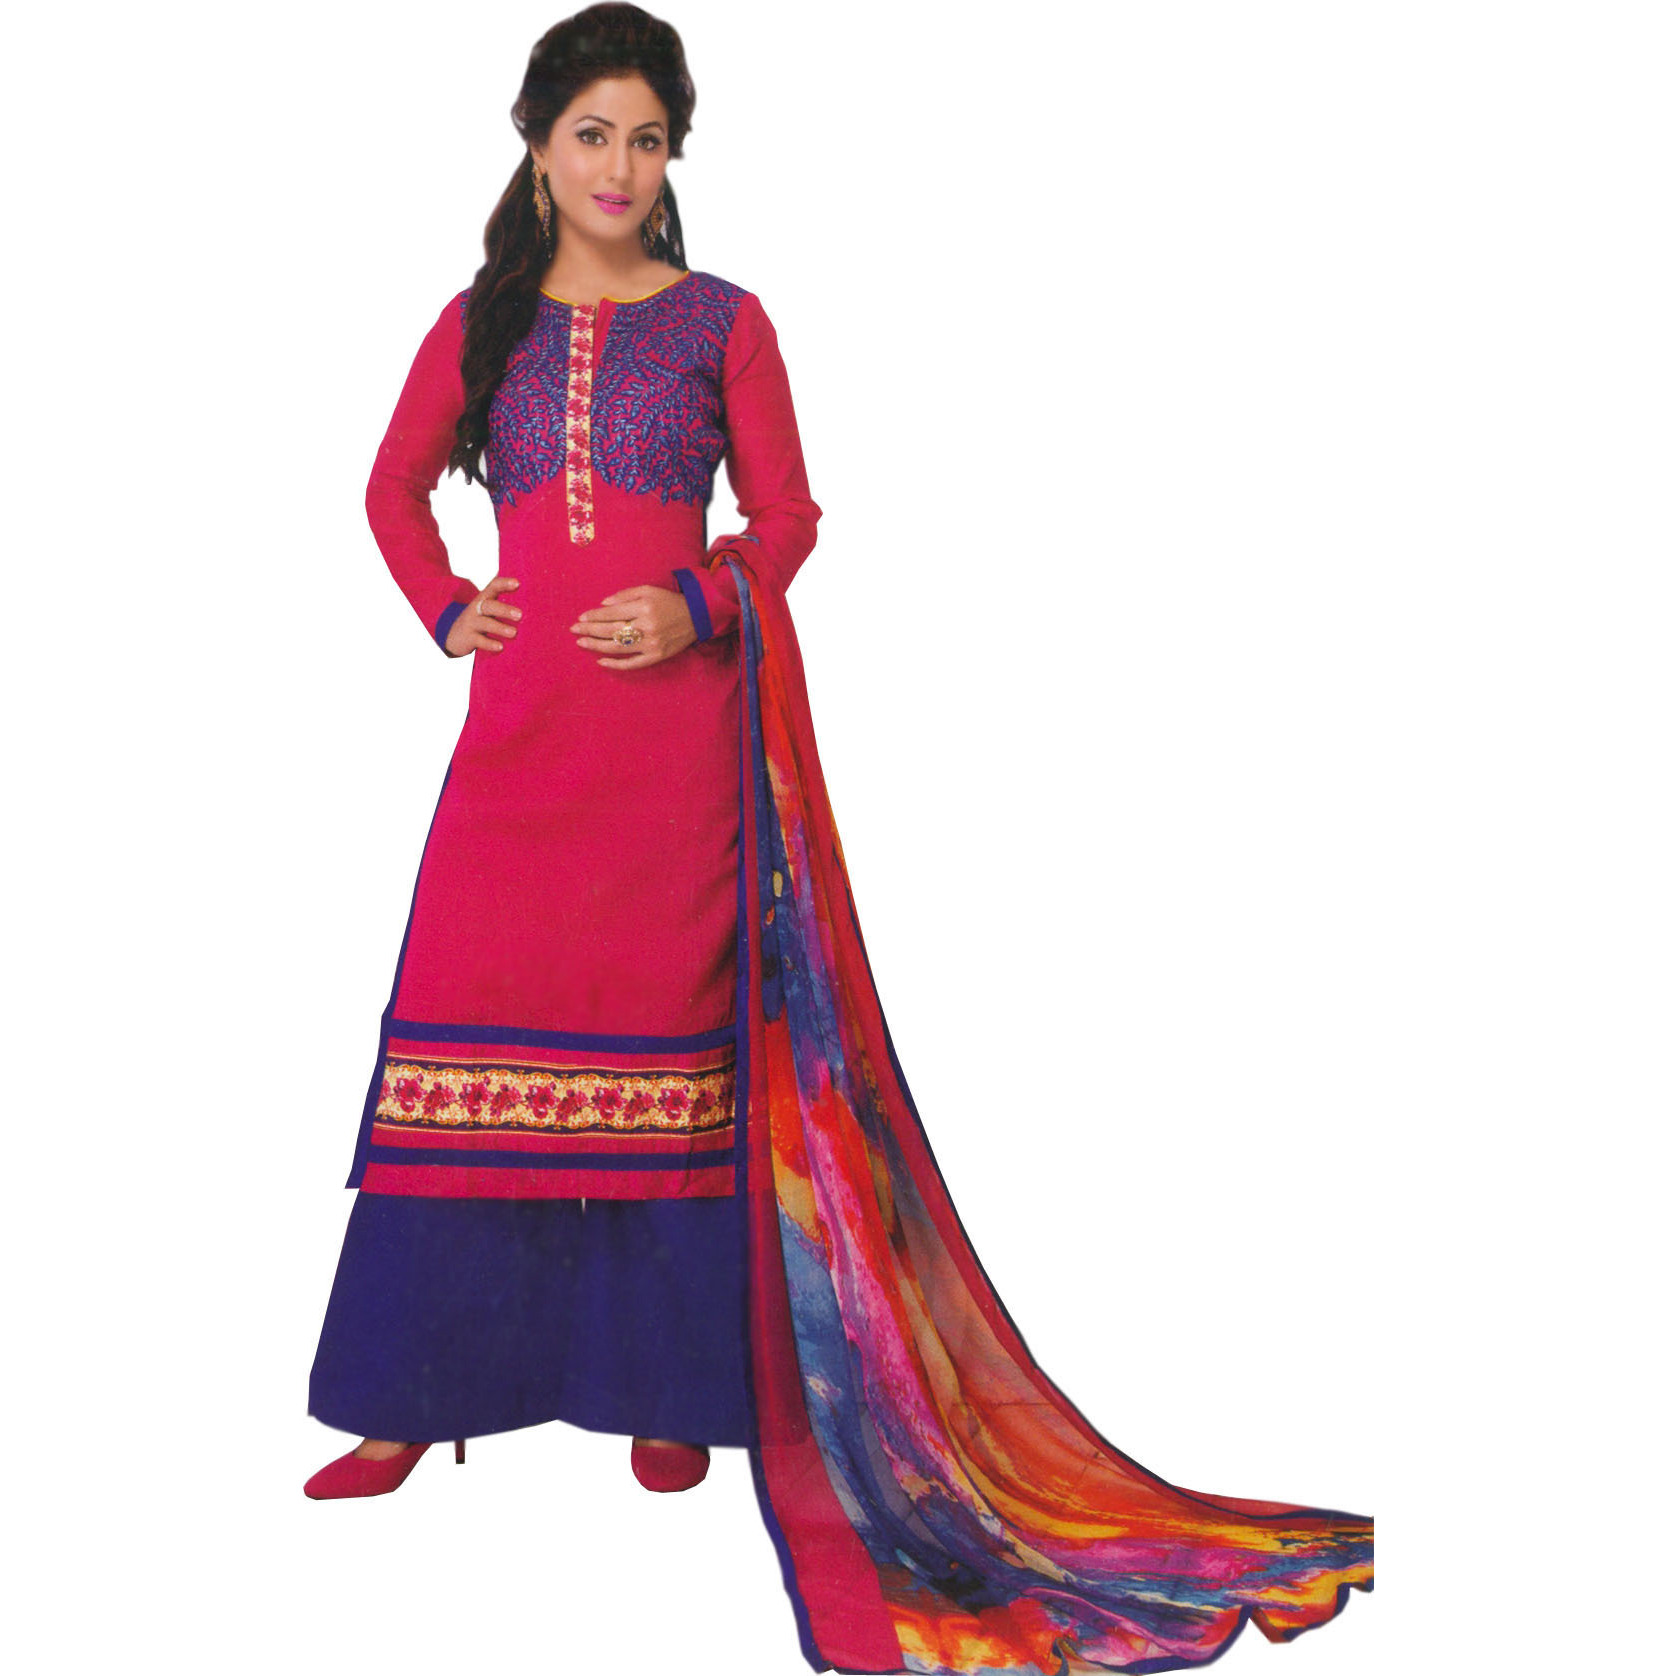 Magenta and Blue Long Palazzo Salwar Suit with Embroidered Leaves and Digital-Printed Dupatta